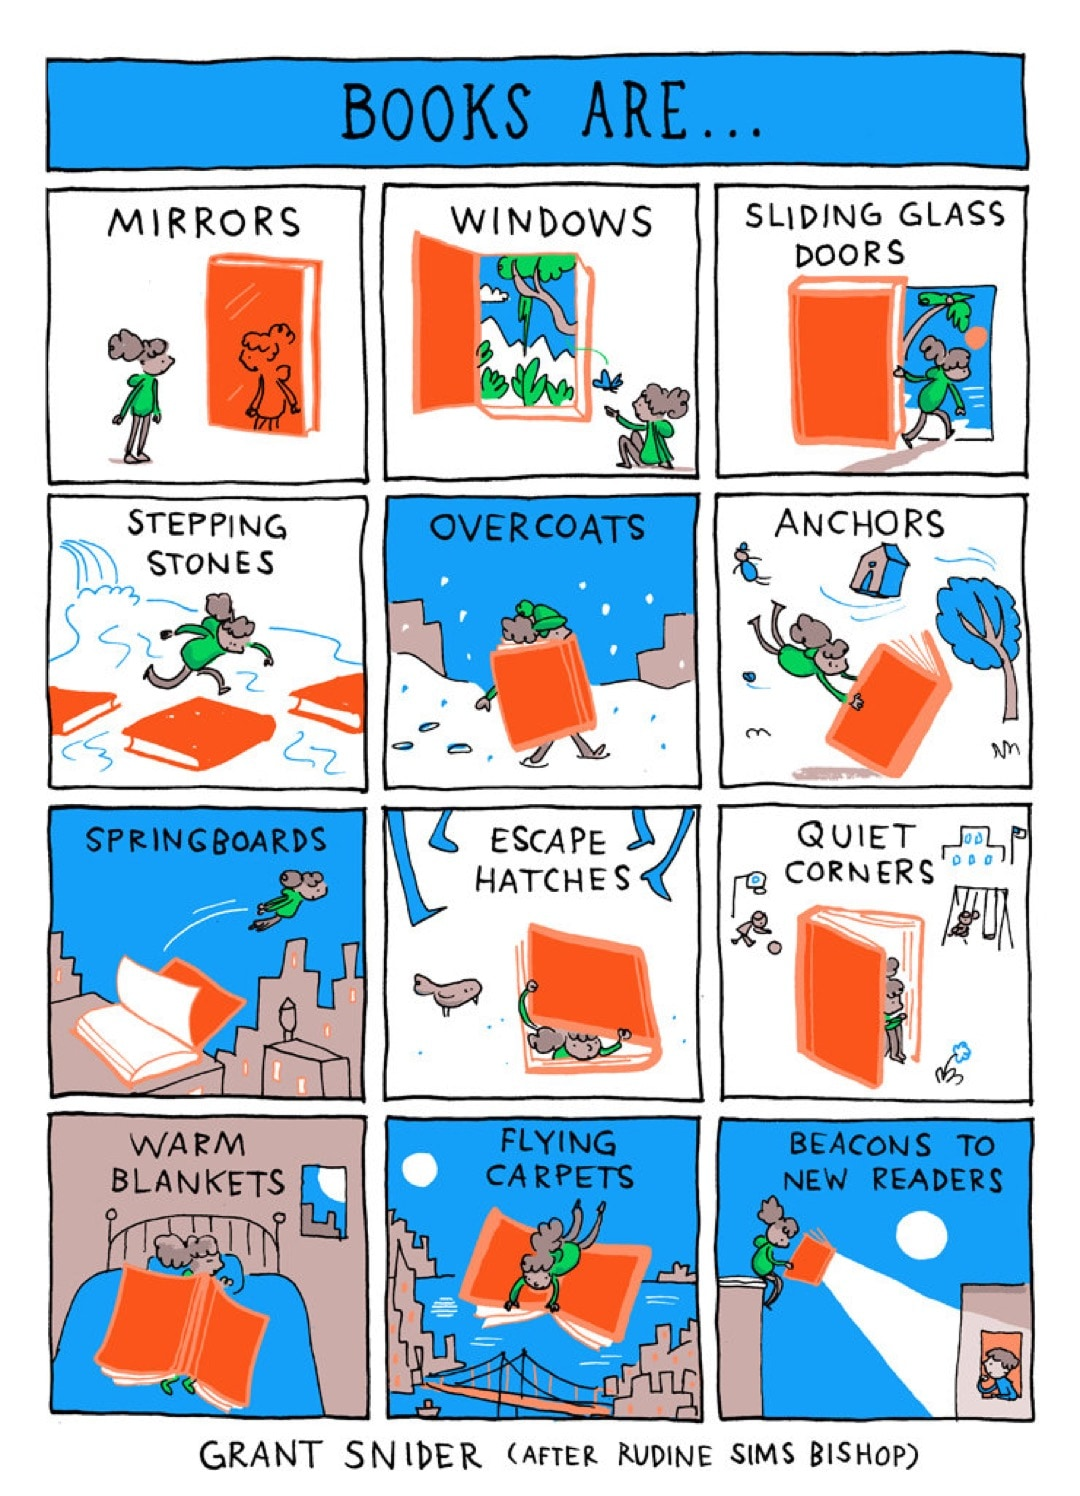 Books Are - a cartoon by Grant Snider